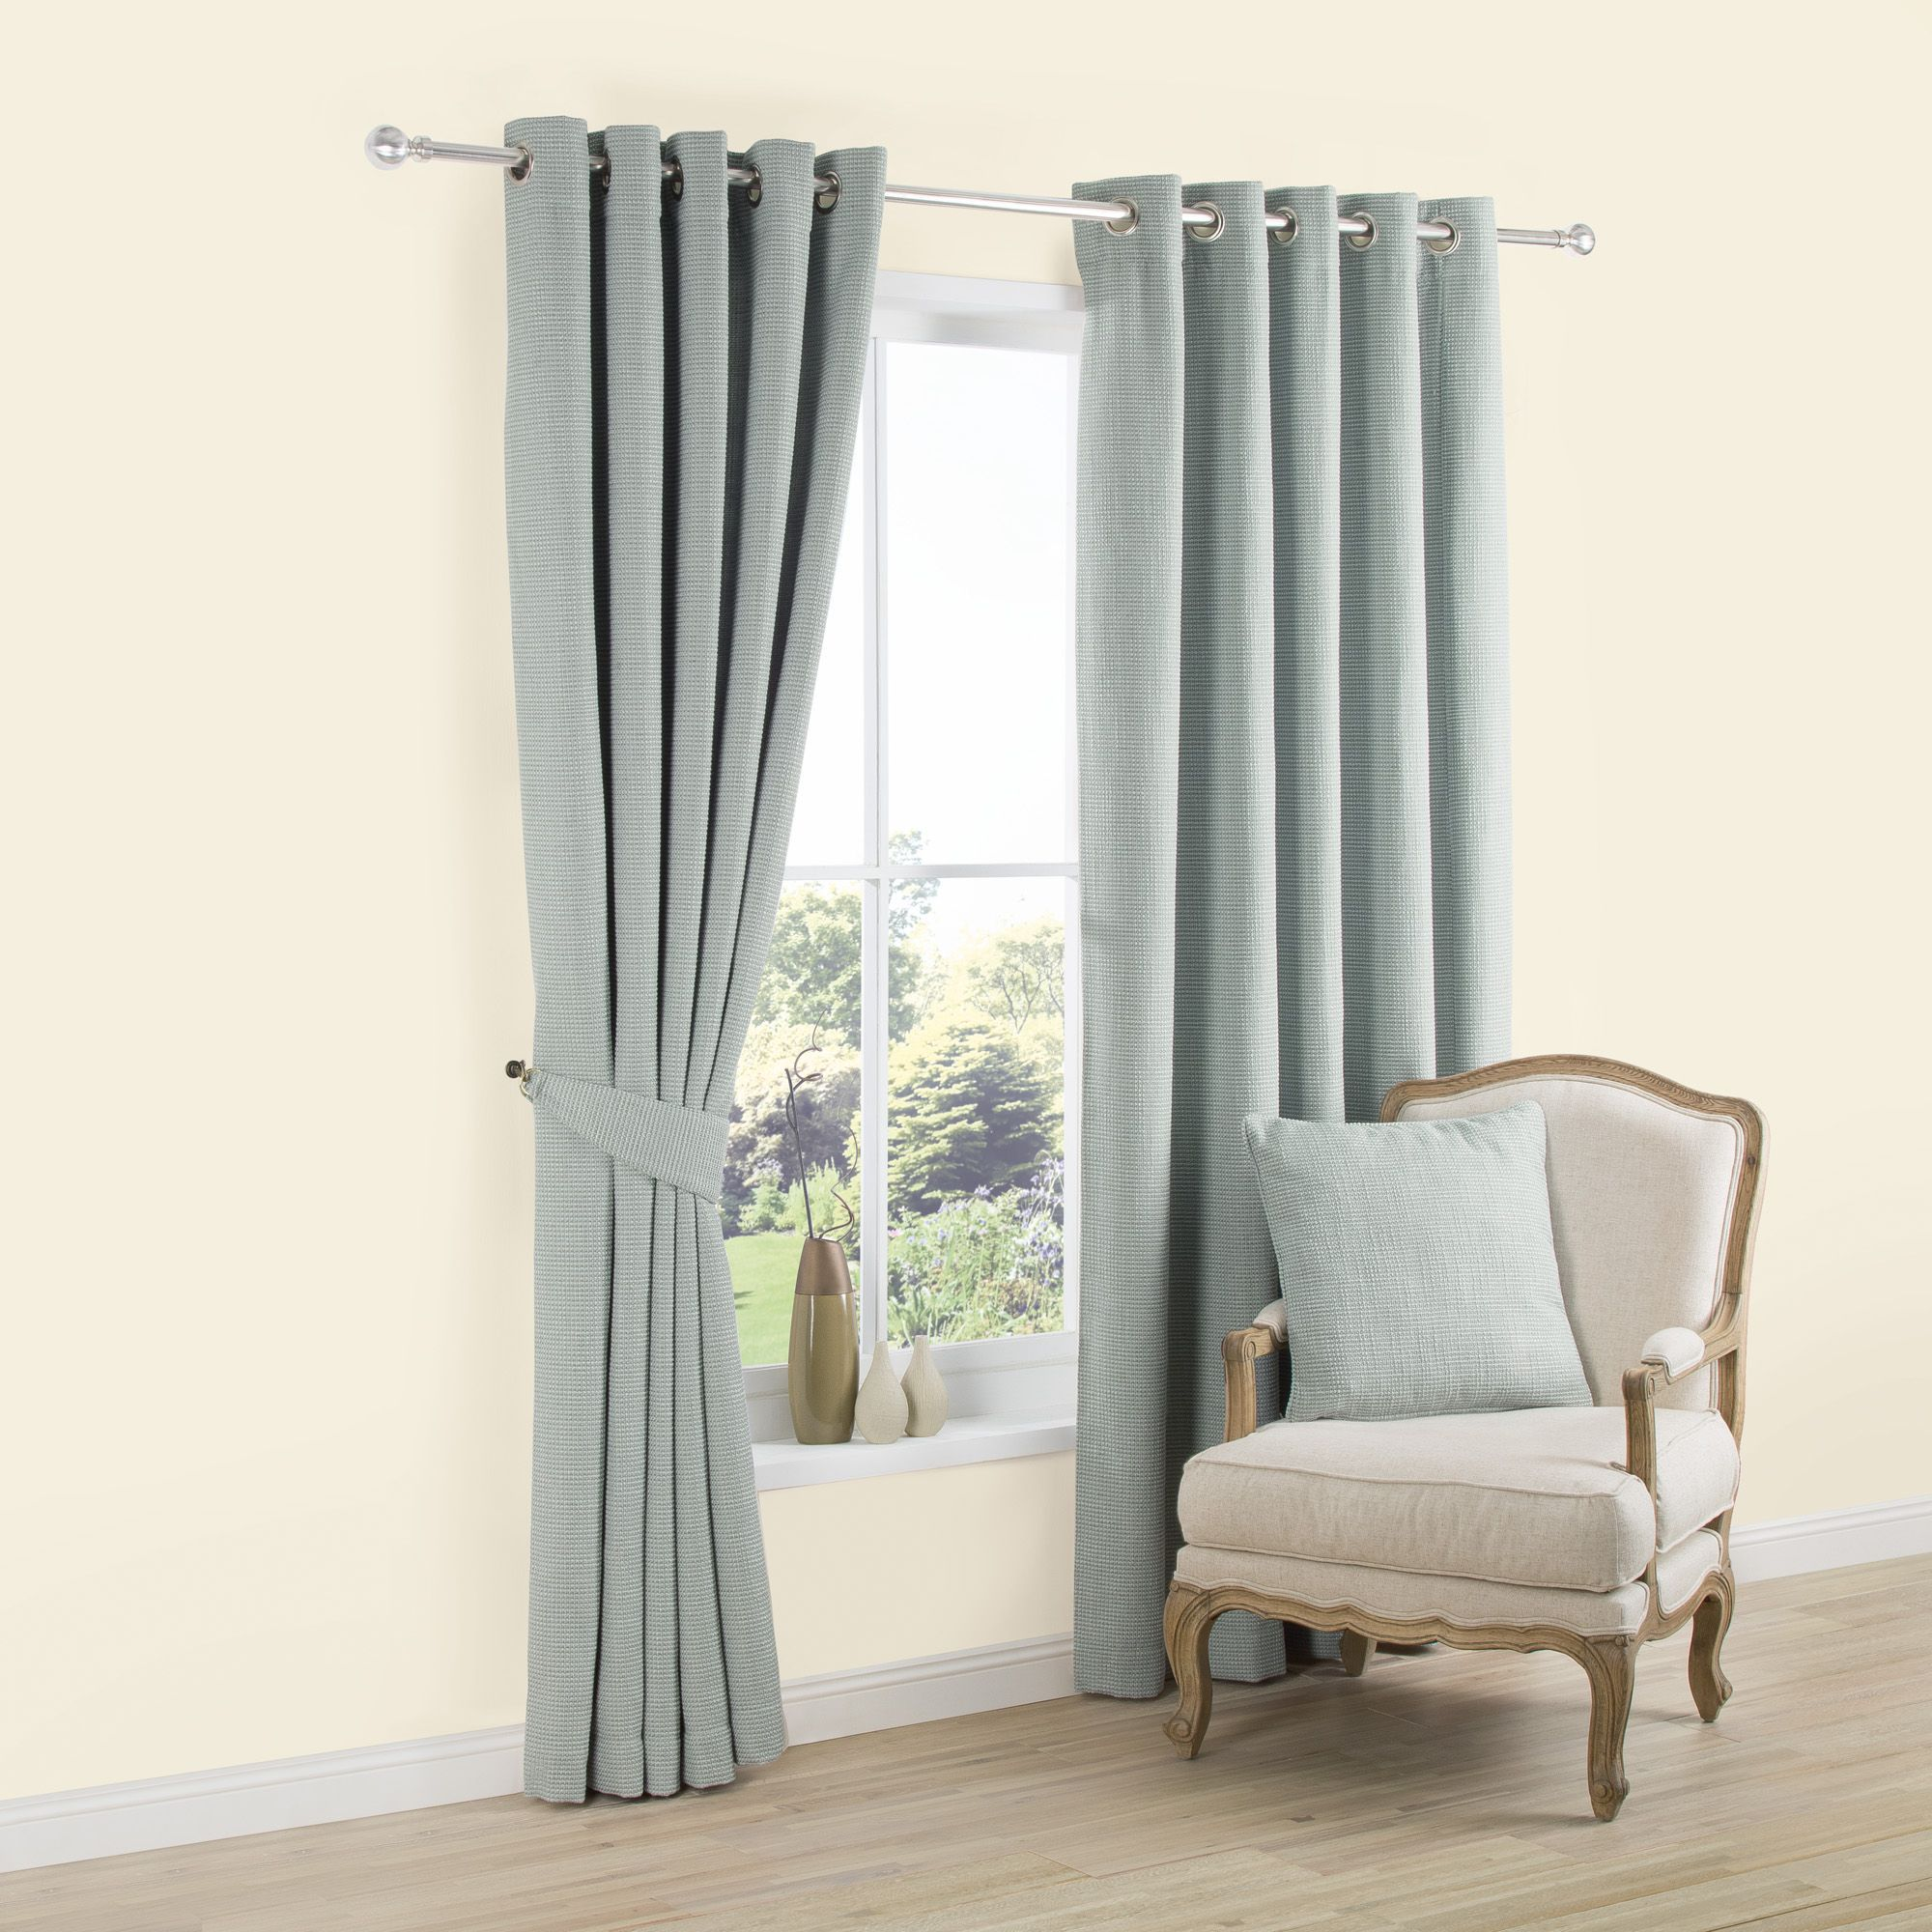 Carina Duck Egg Plain Woven Eyelet Lined Curtains